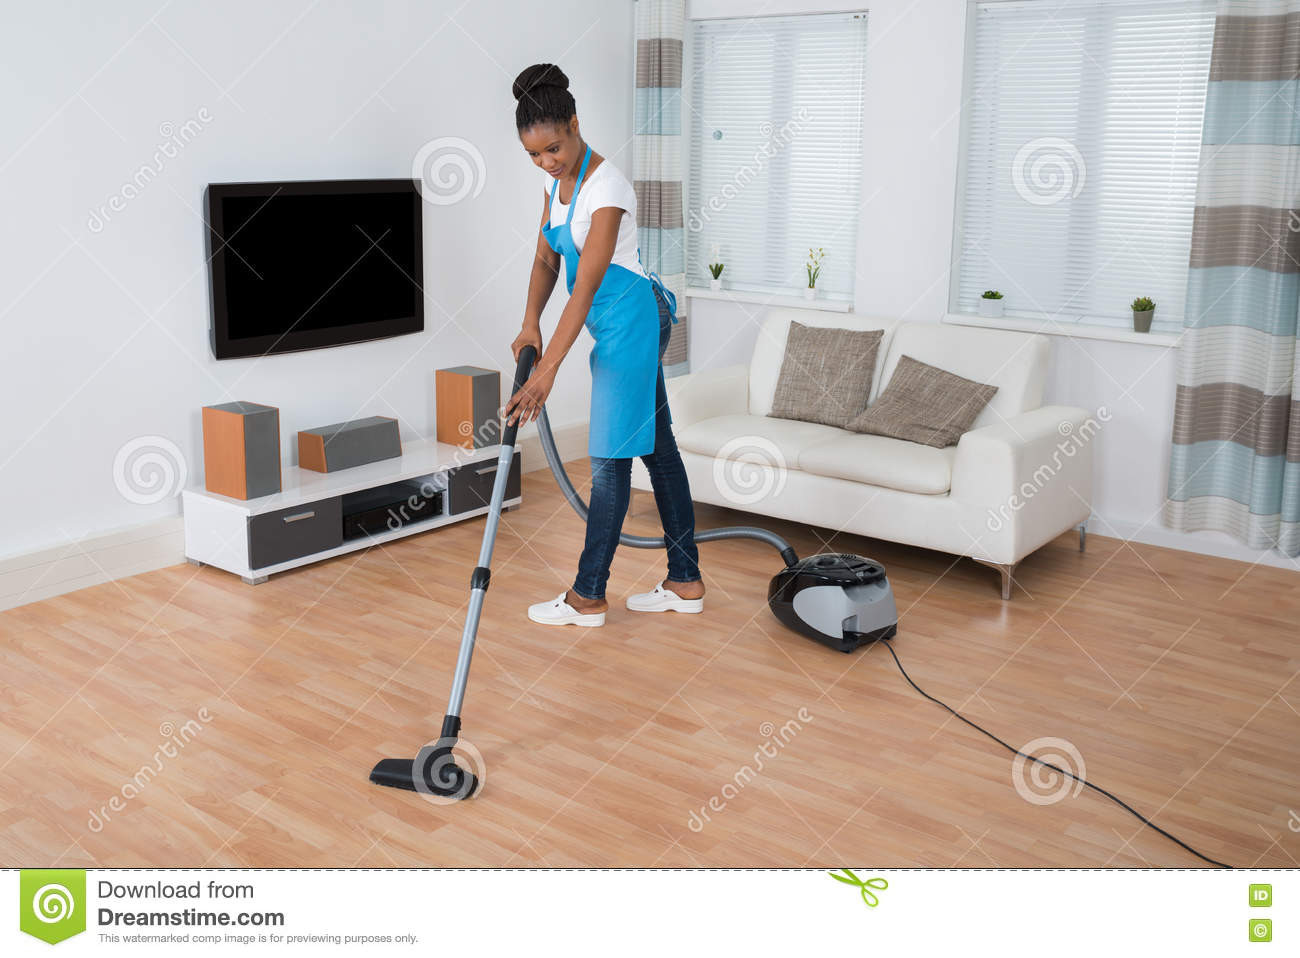 hardwood floor vacuum and steamer of woman cleaning floor with vacuum cleaner stock image image of regarding woman cleaning floor with vacuum cleaner